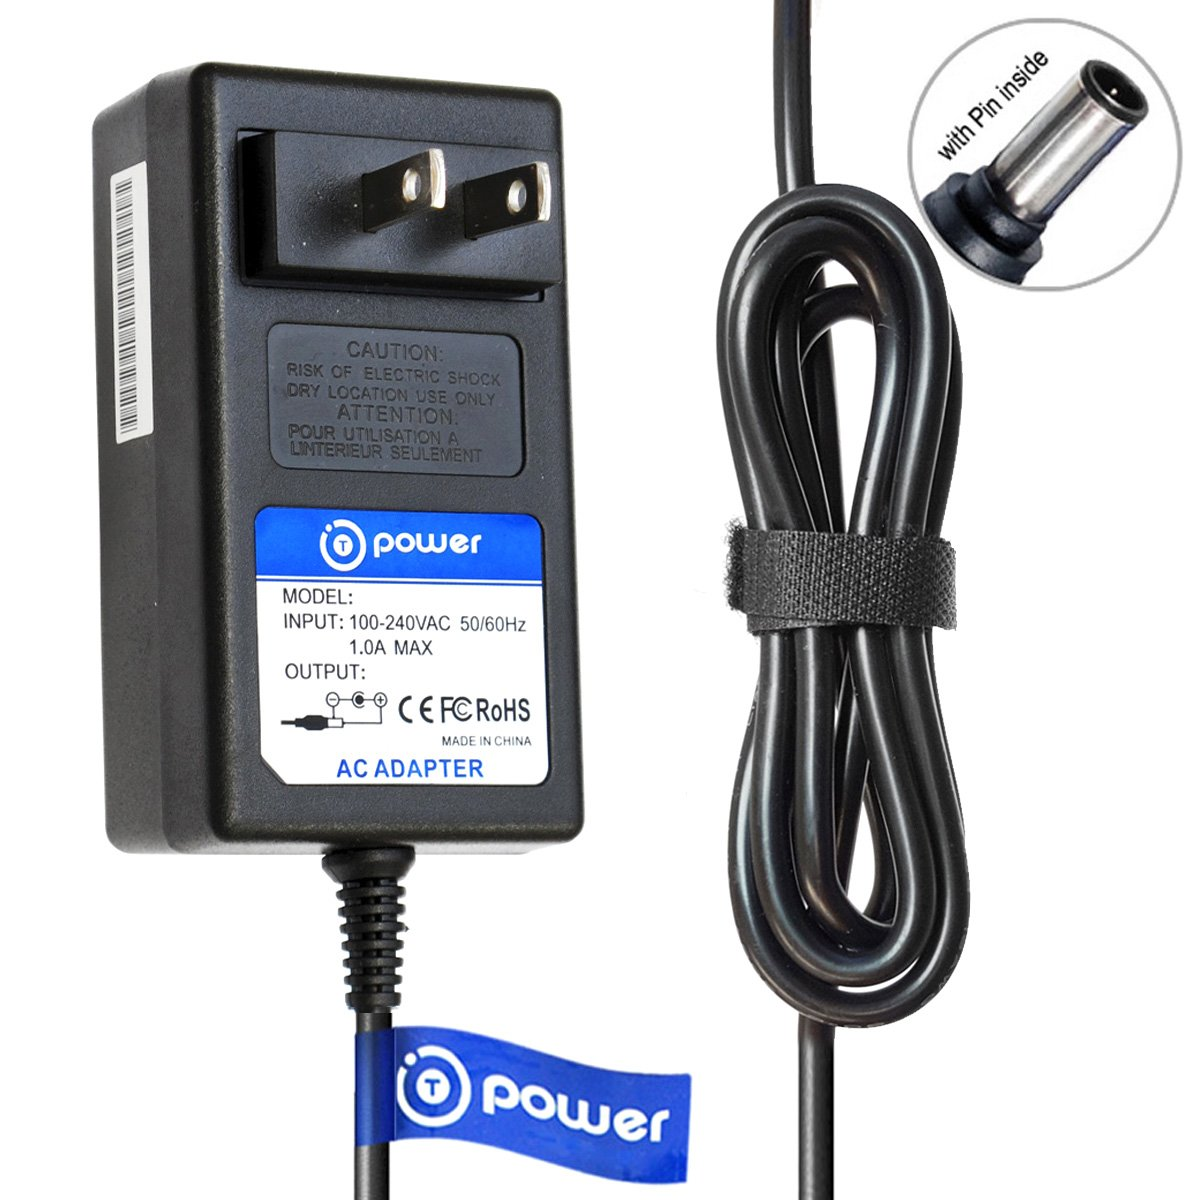 T POWER 12V Ac Dc Adapter Charger for Casio Privia Digital Piano Keyboard (AD-A12150LW ADA12150LW) PX, WK, CDP, AP, CTK SERIES PX130RD/BK/WE Digital Piano Keyboard Power Supply